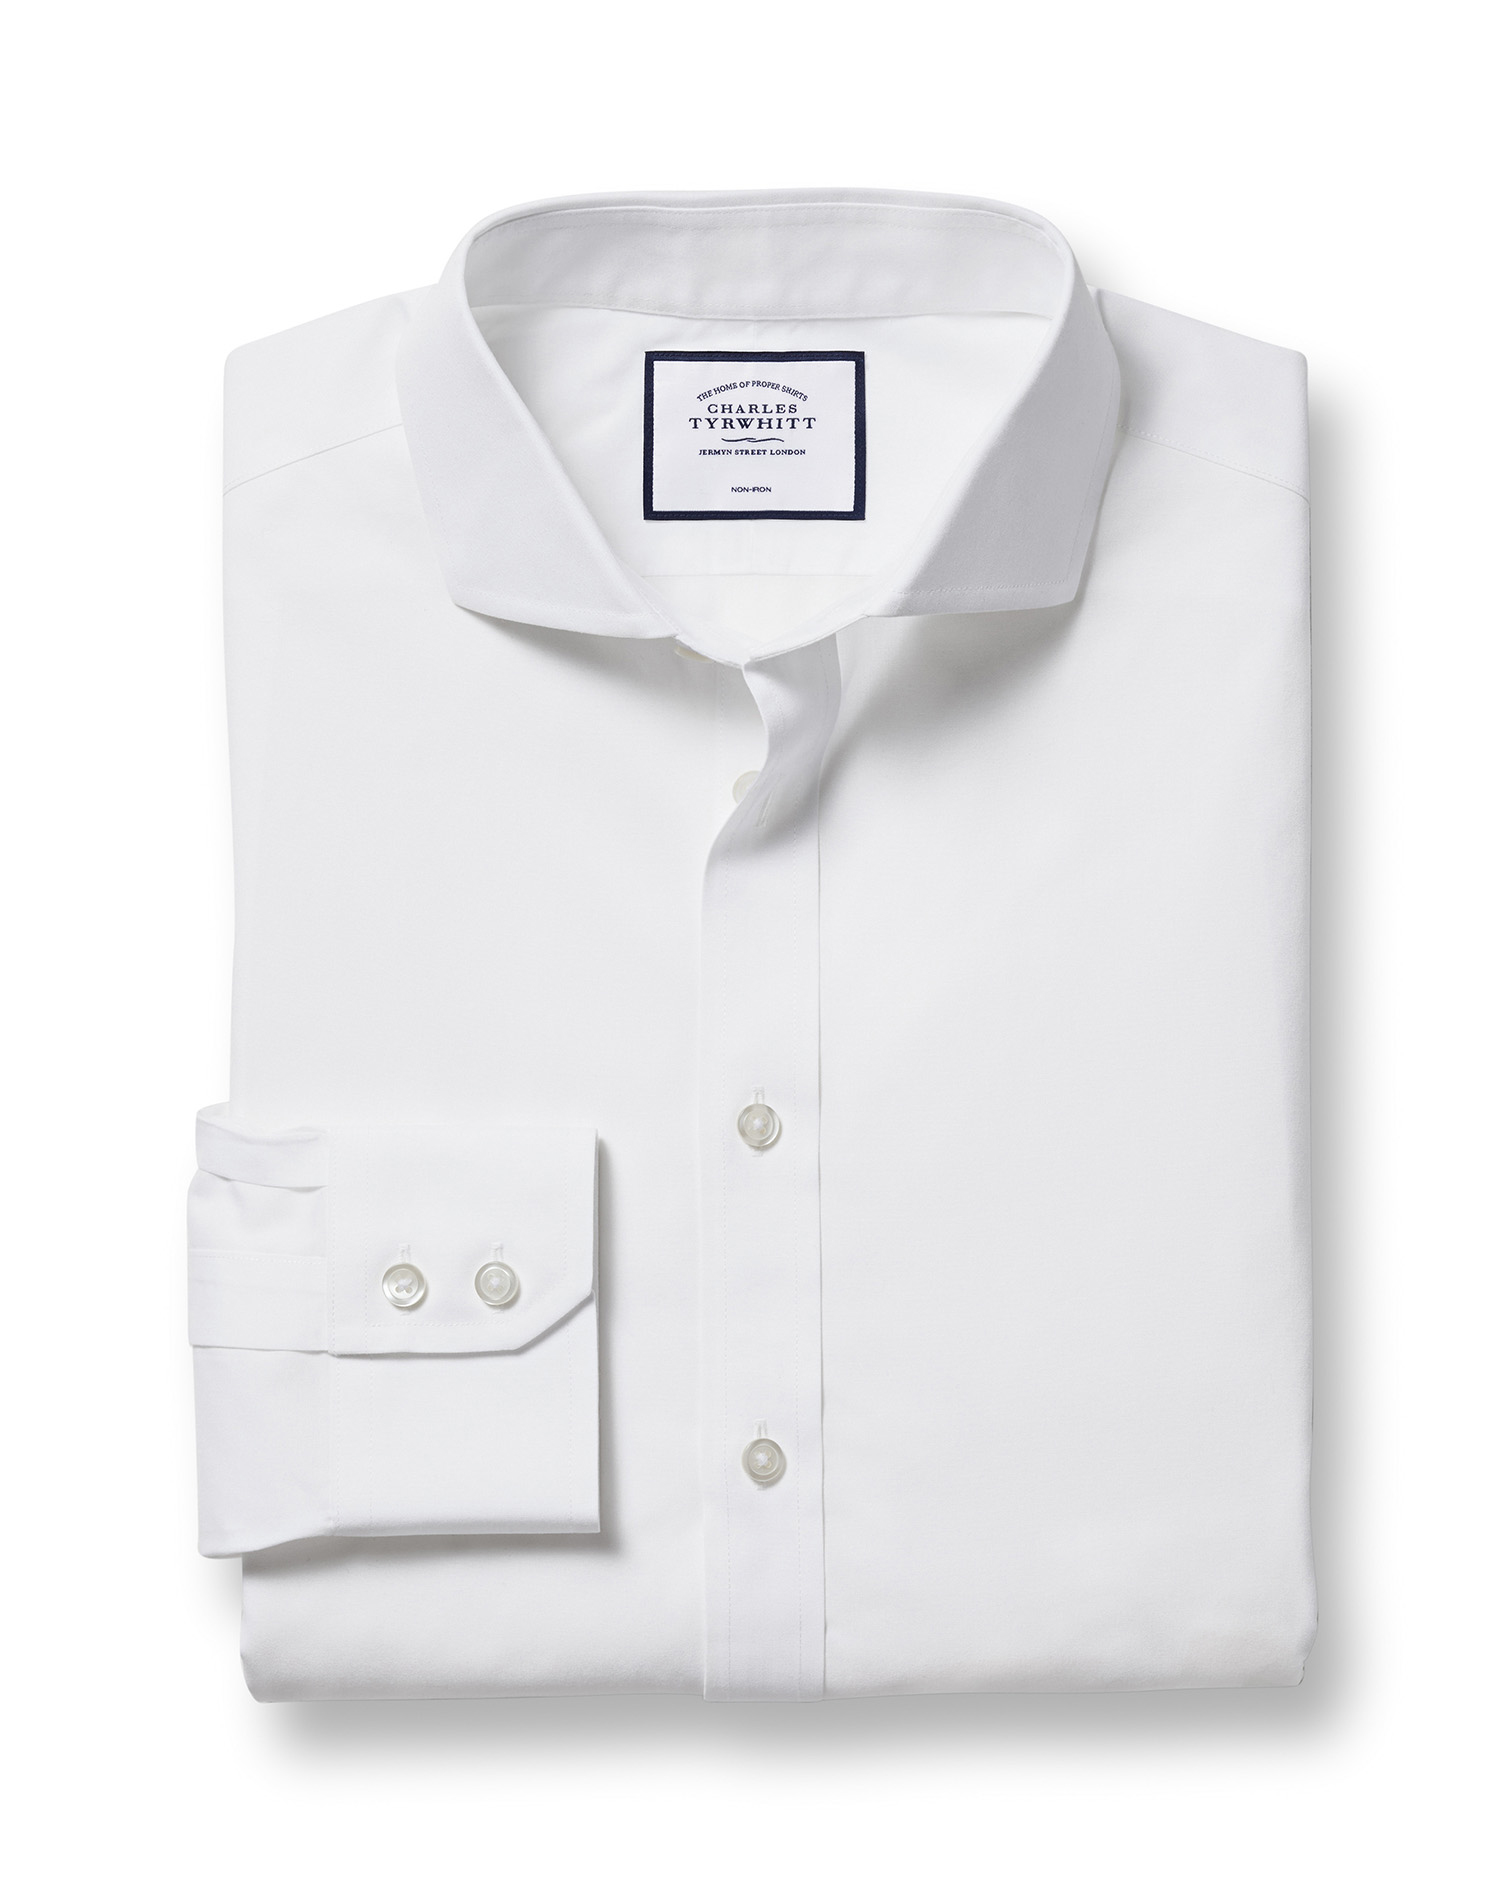 Classic Fit Cutaway Non-Iron Poplin White Cotton Formal Shirt Double Cuff Size 17/36 by Charles Tyrw